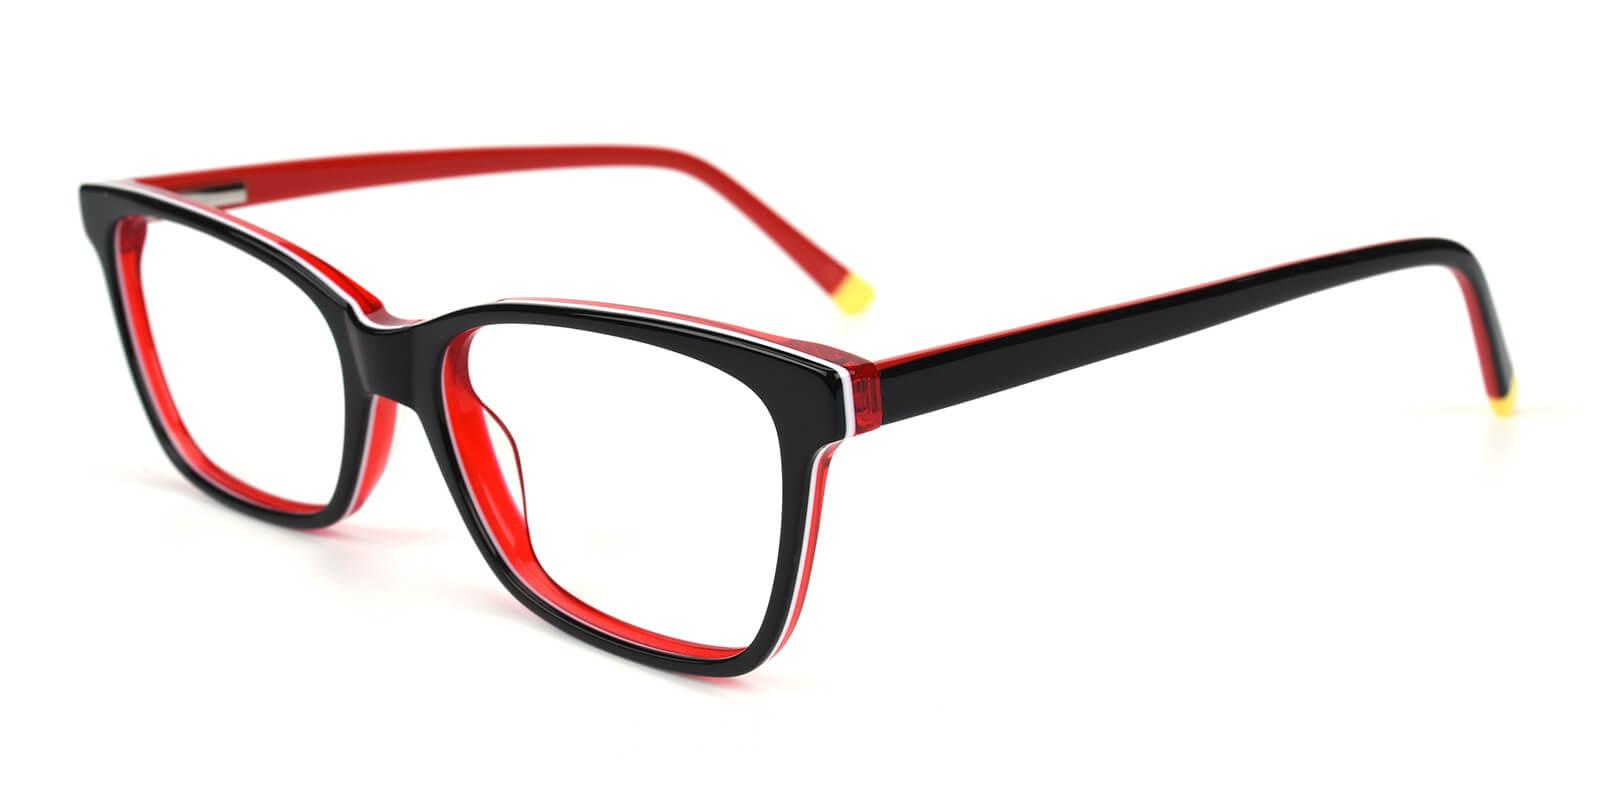 Waferay-Red-Cat-Acetate-Eyeglasses-additional1